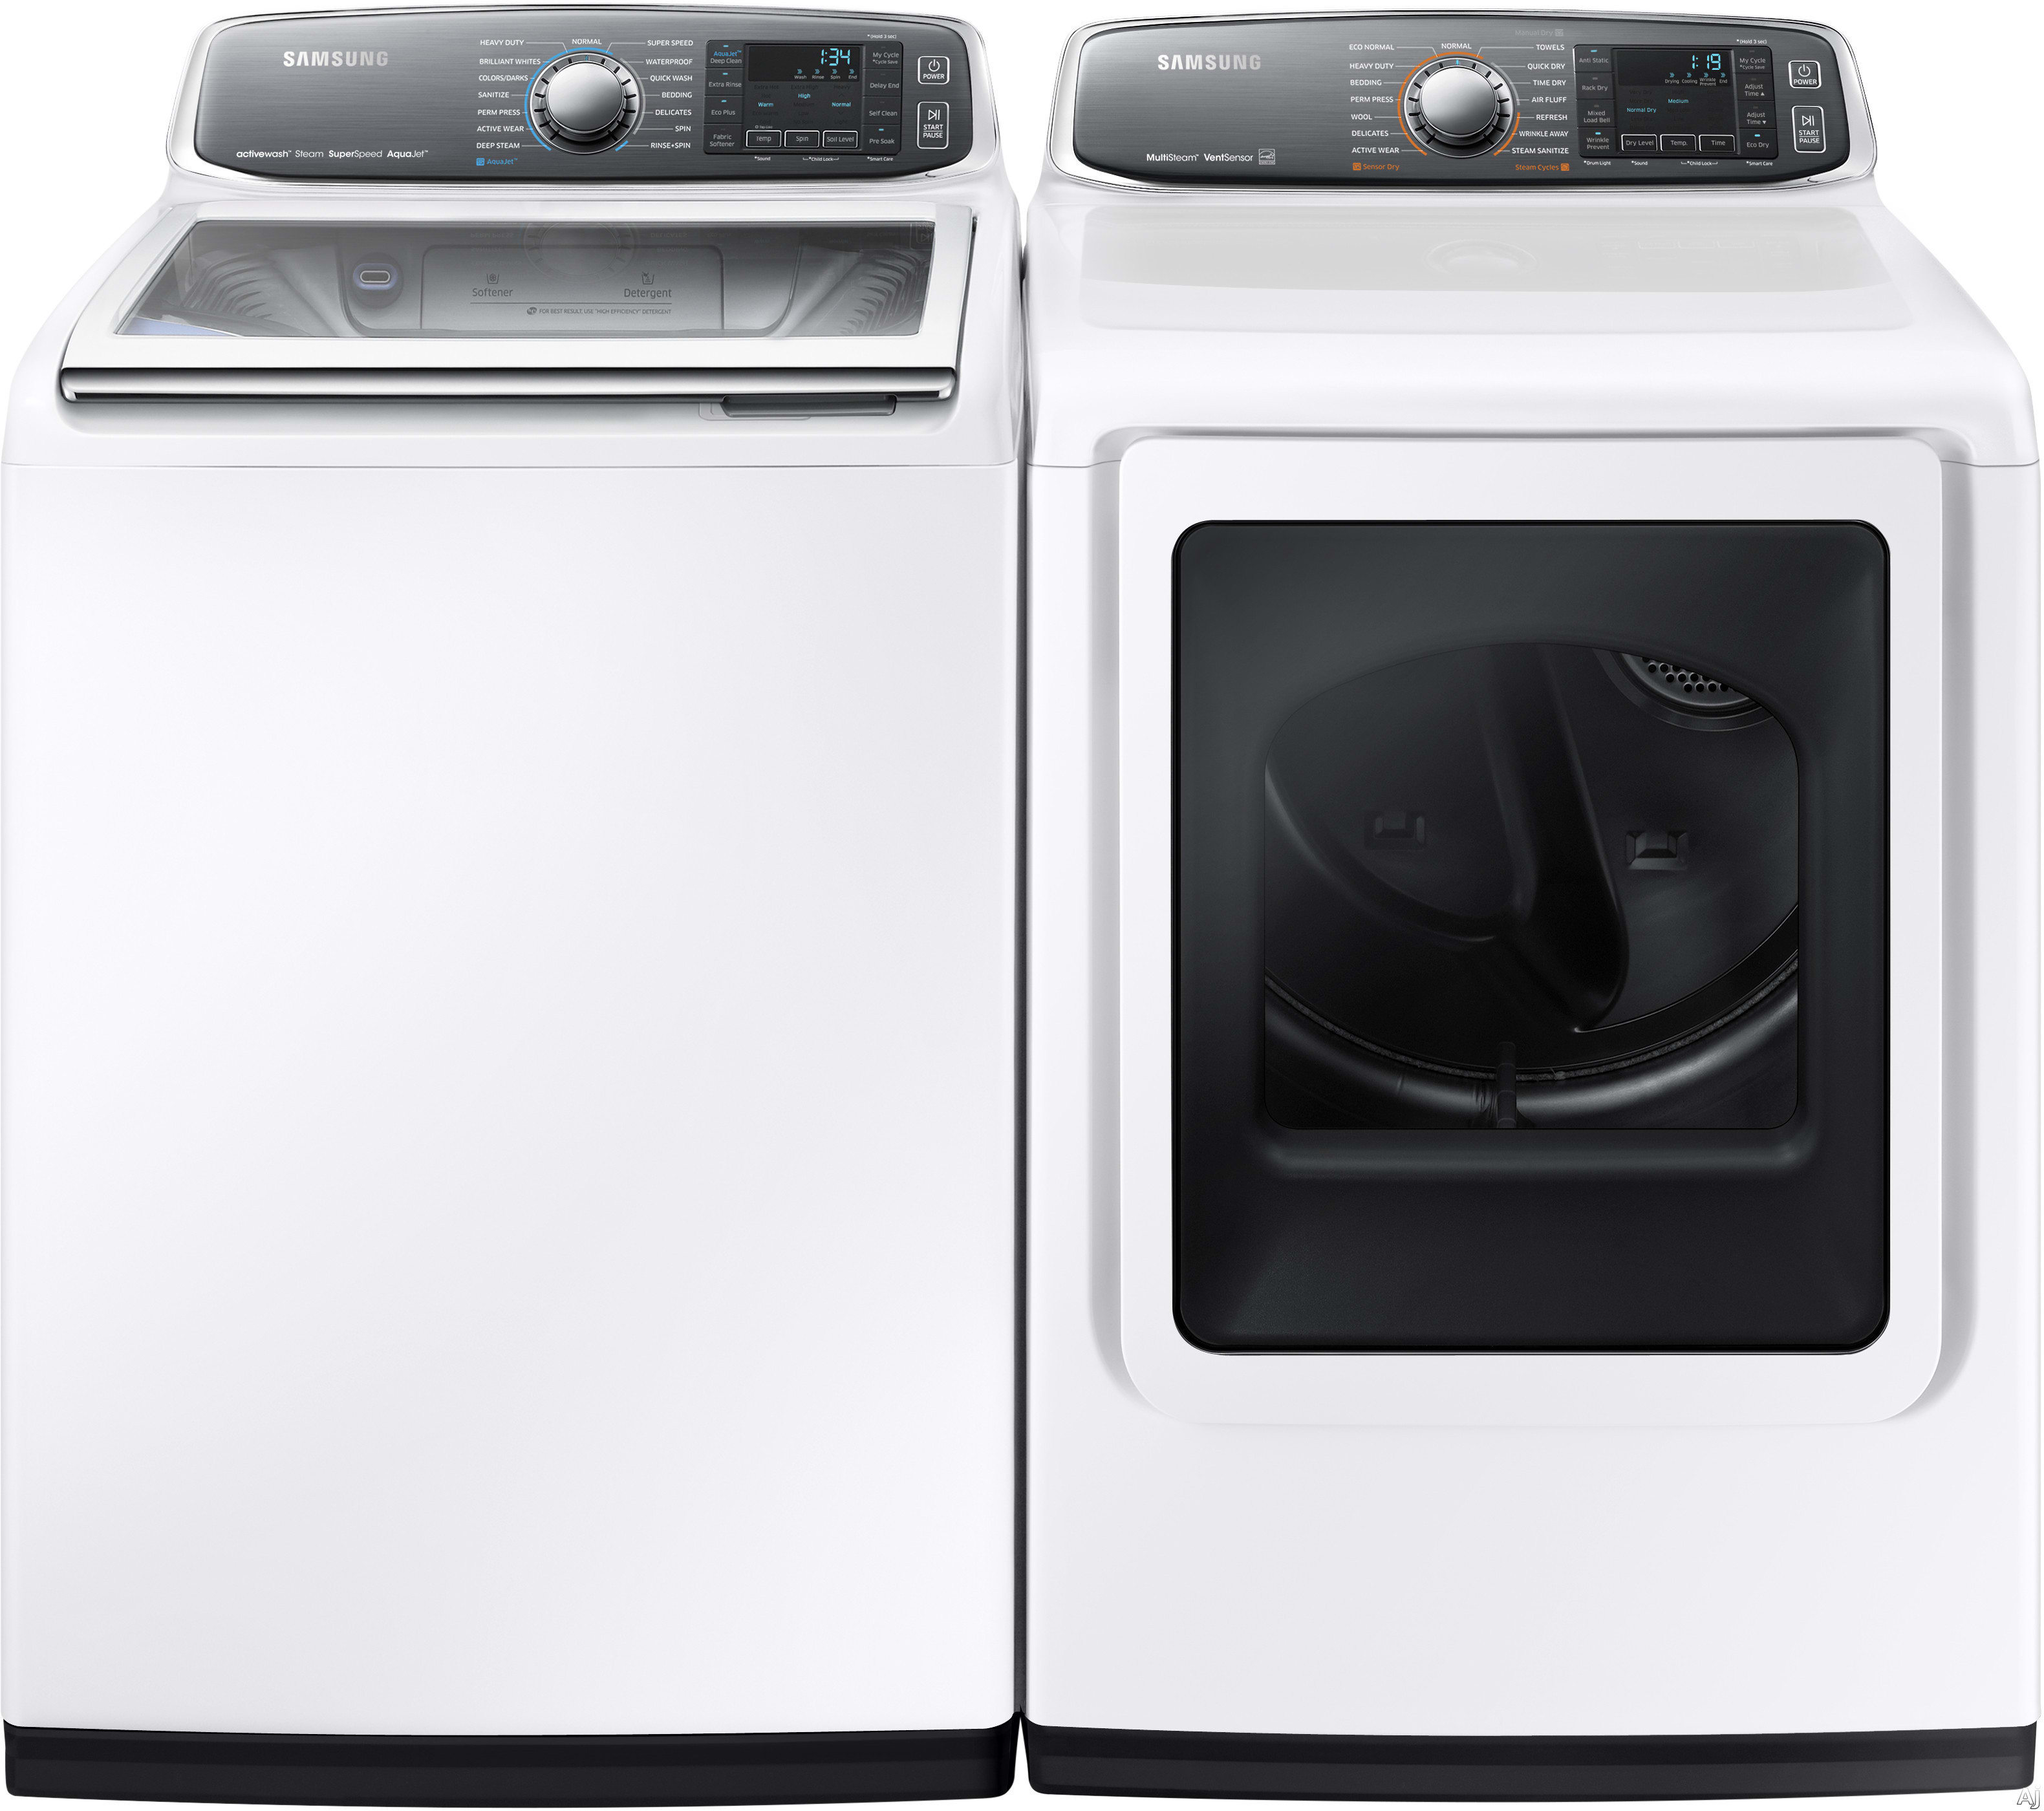 Samsung SAWADRGW3 Side-by-Side Washer & Dryer Set with Top Load Washer and  Gas Dryer in White